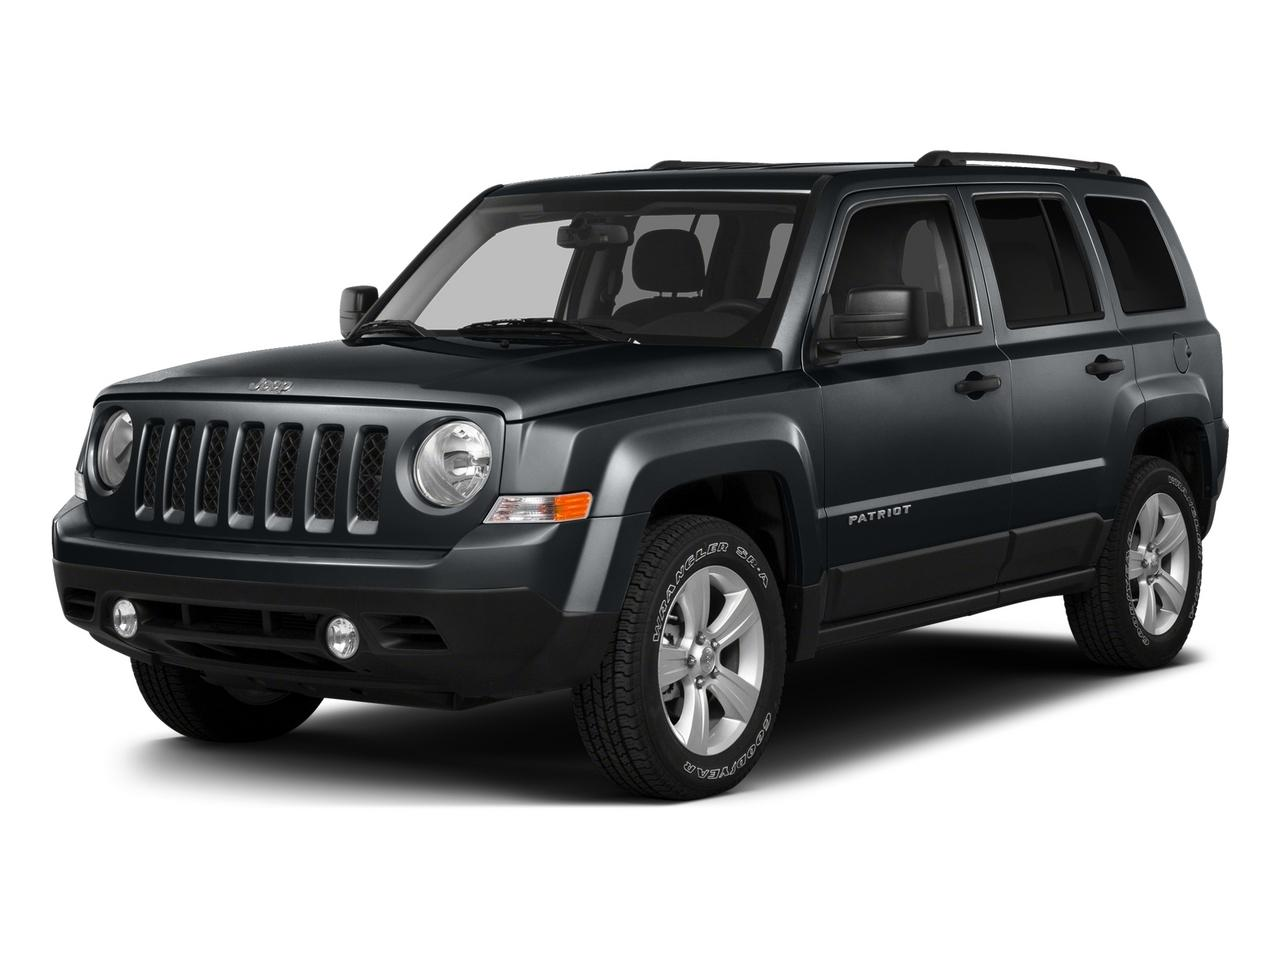 2015 Jeep Patriot Vehicle Photo in Easton, PA 18045